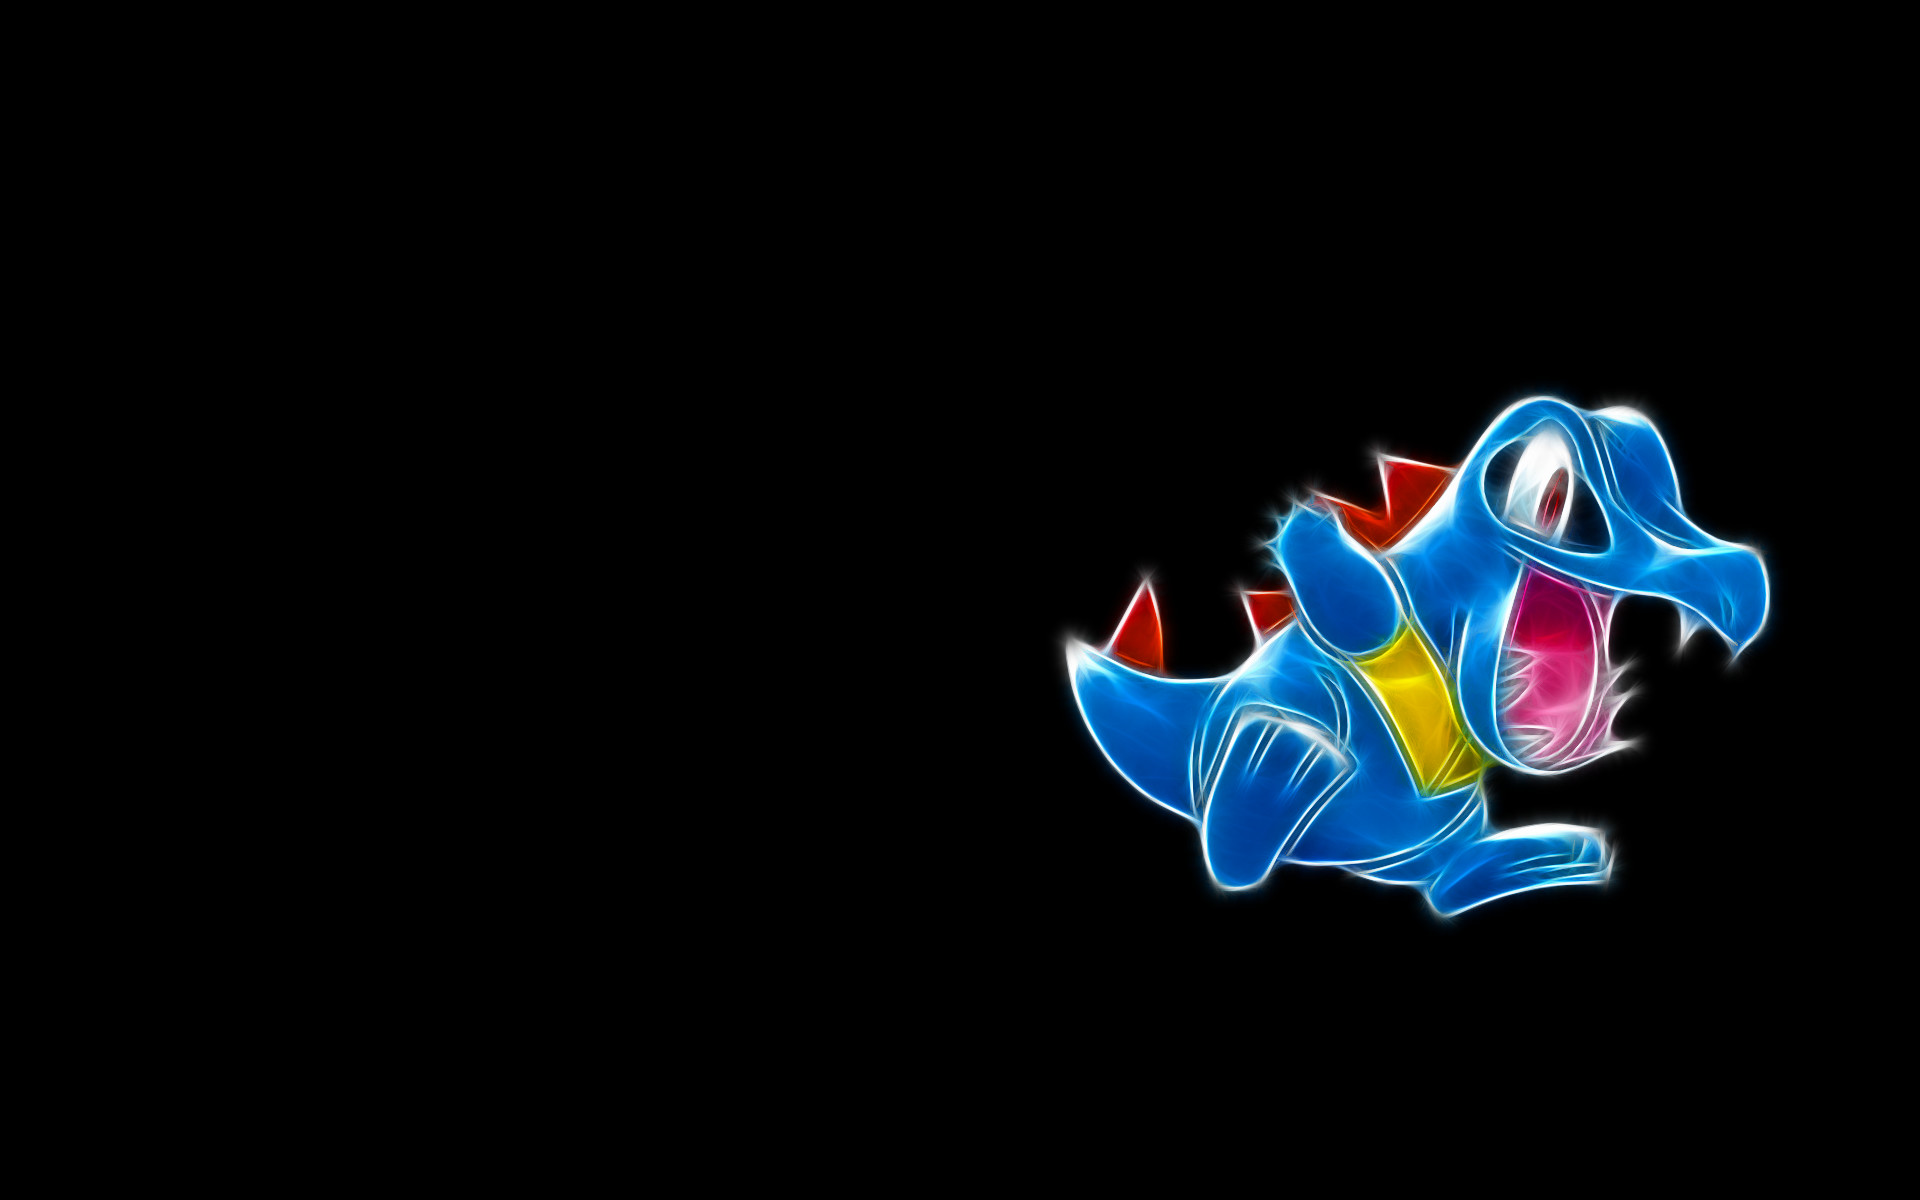 1920x1200 Totodile Wallpapers - Wallpaper Cave